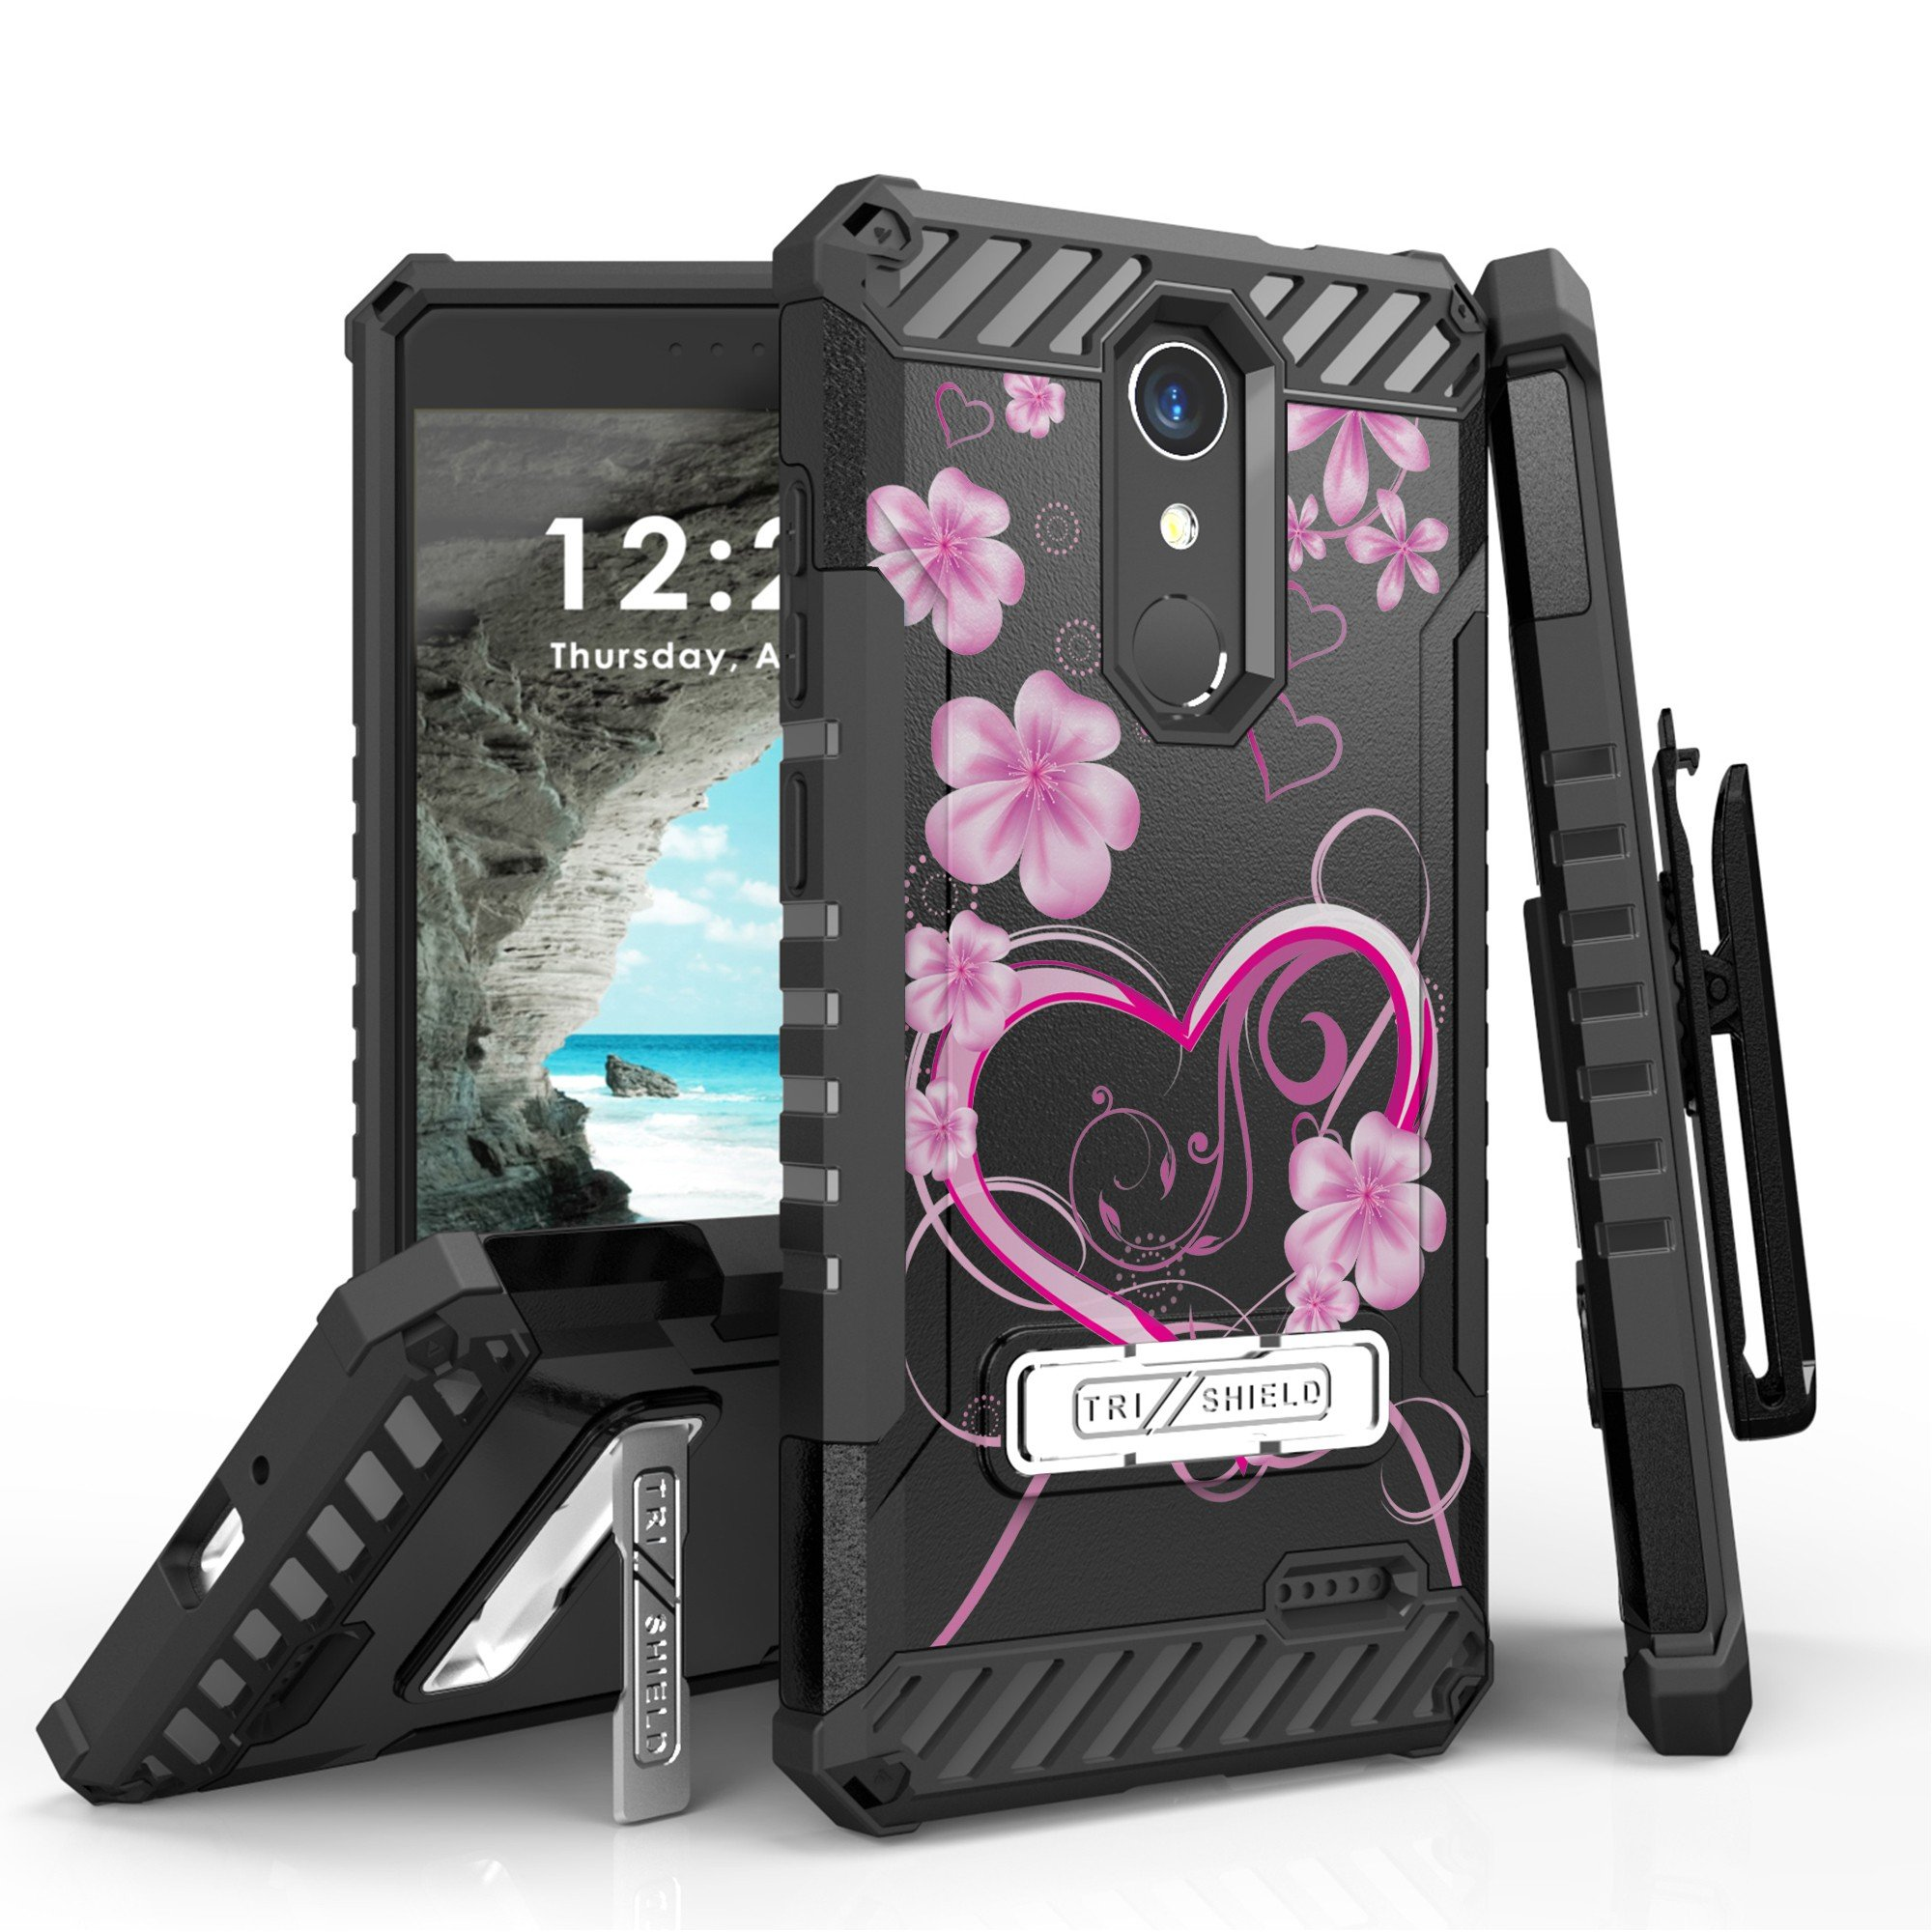 ZTE Grand X4, ZTE Blade Spark Case, Trishield Durable RuggedPhone Cover With Holster Detachable Lanyard Loop And Built in Kickstand Card Slot - White Rosy Heart